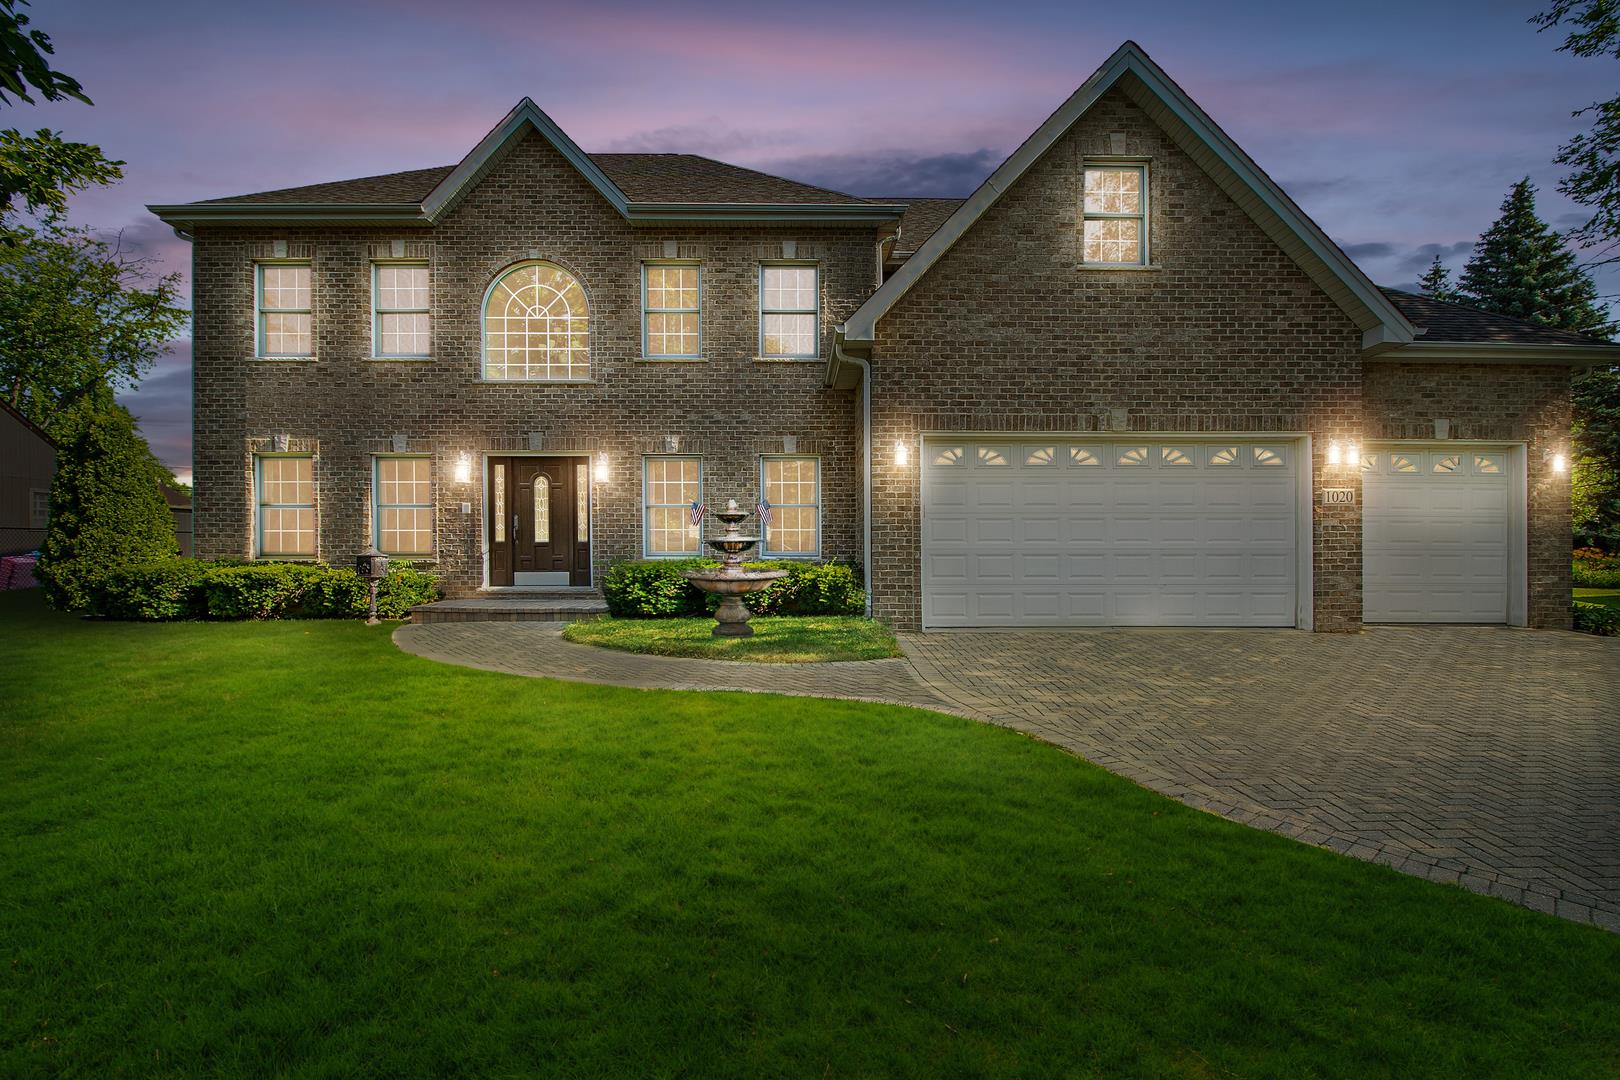 1020 W 55th Place, Countryside, IL 60525 - #: 10967507